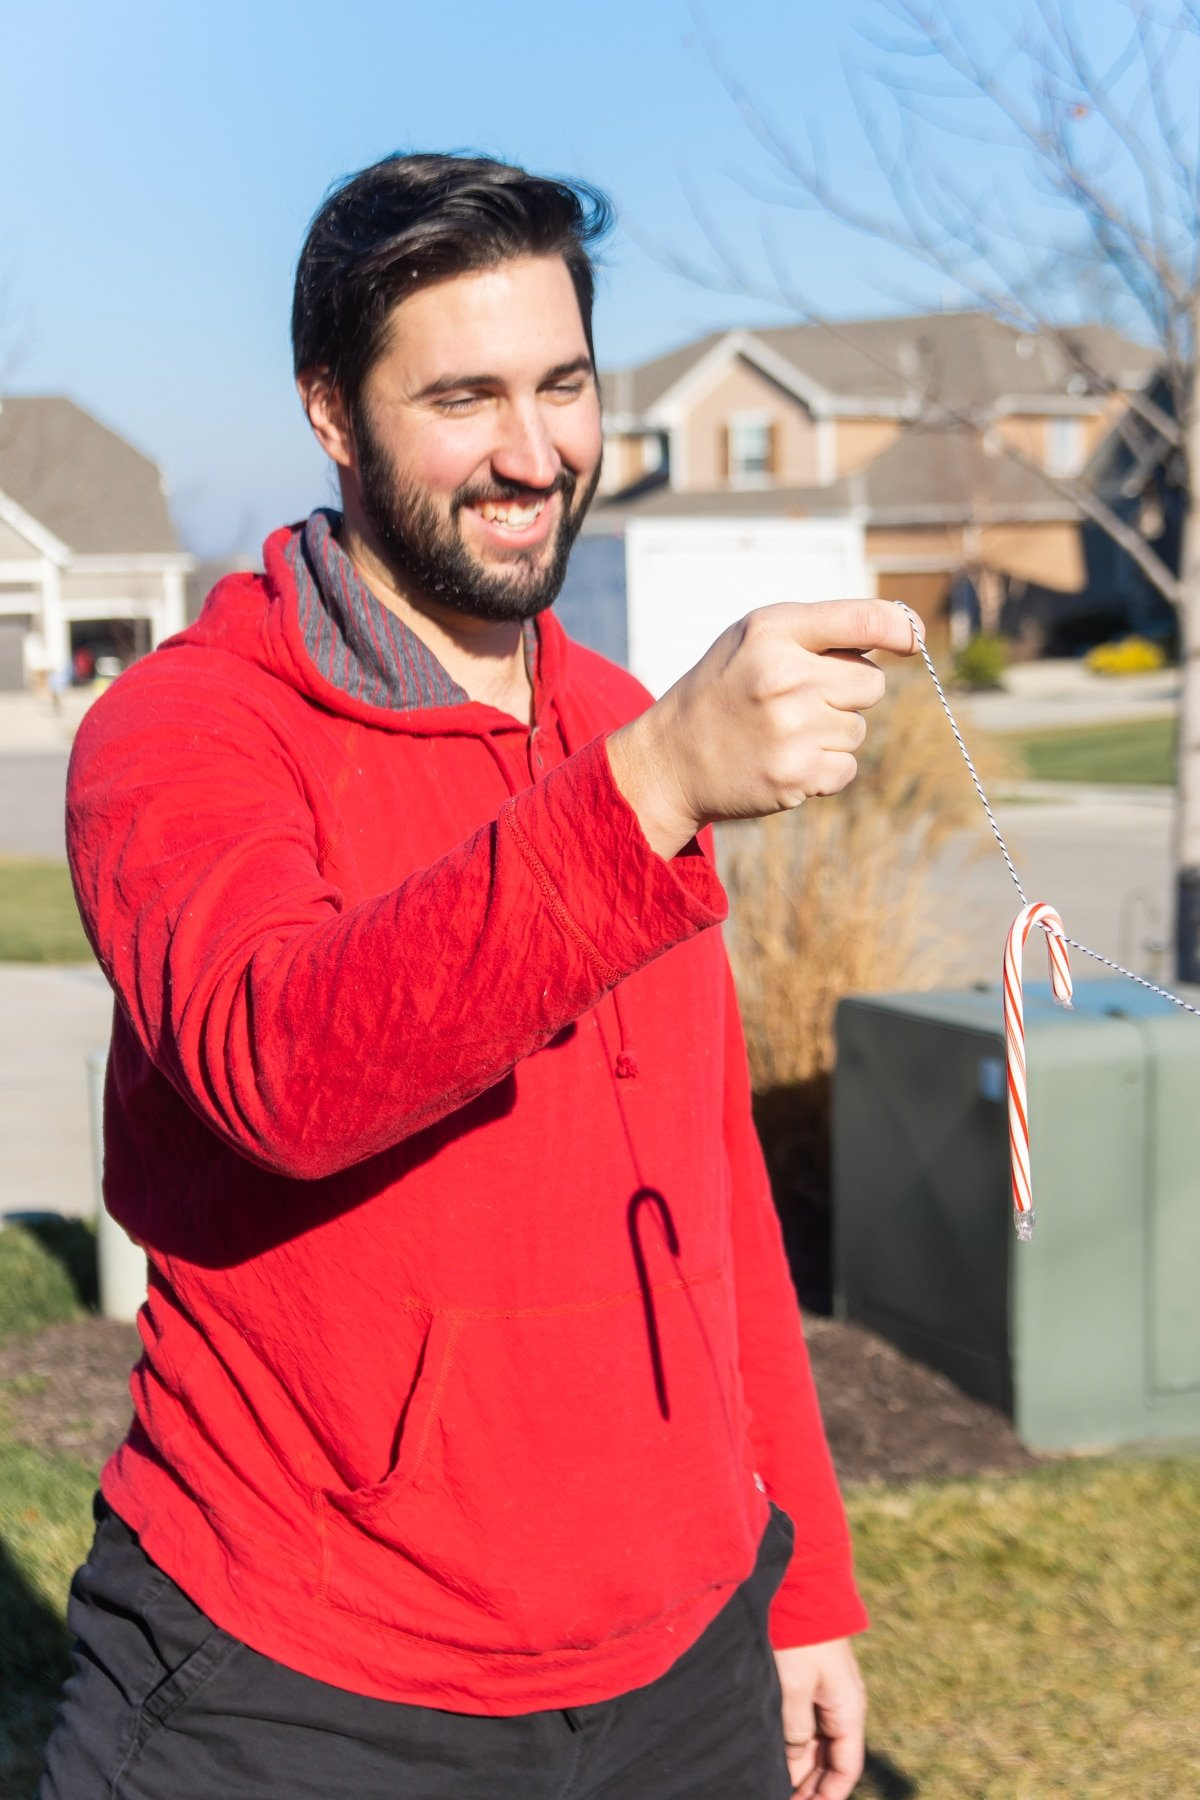 Man in a red sweatshirt holding a candy cane on a string